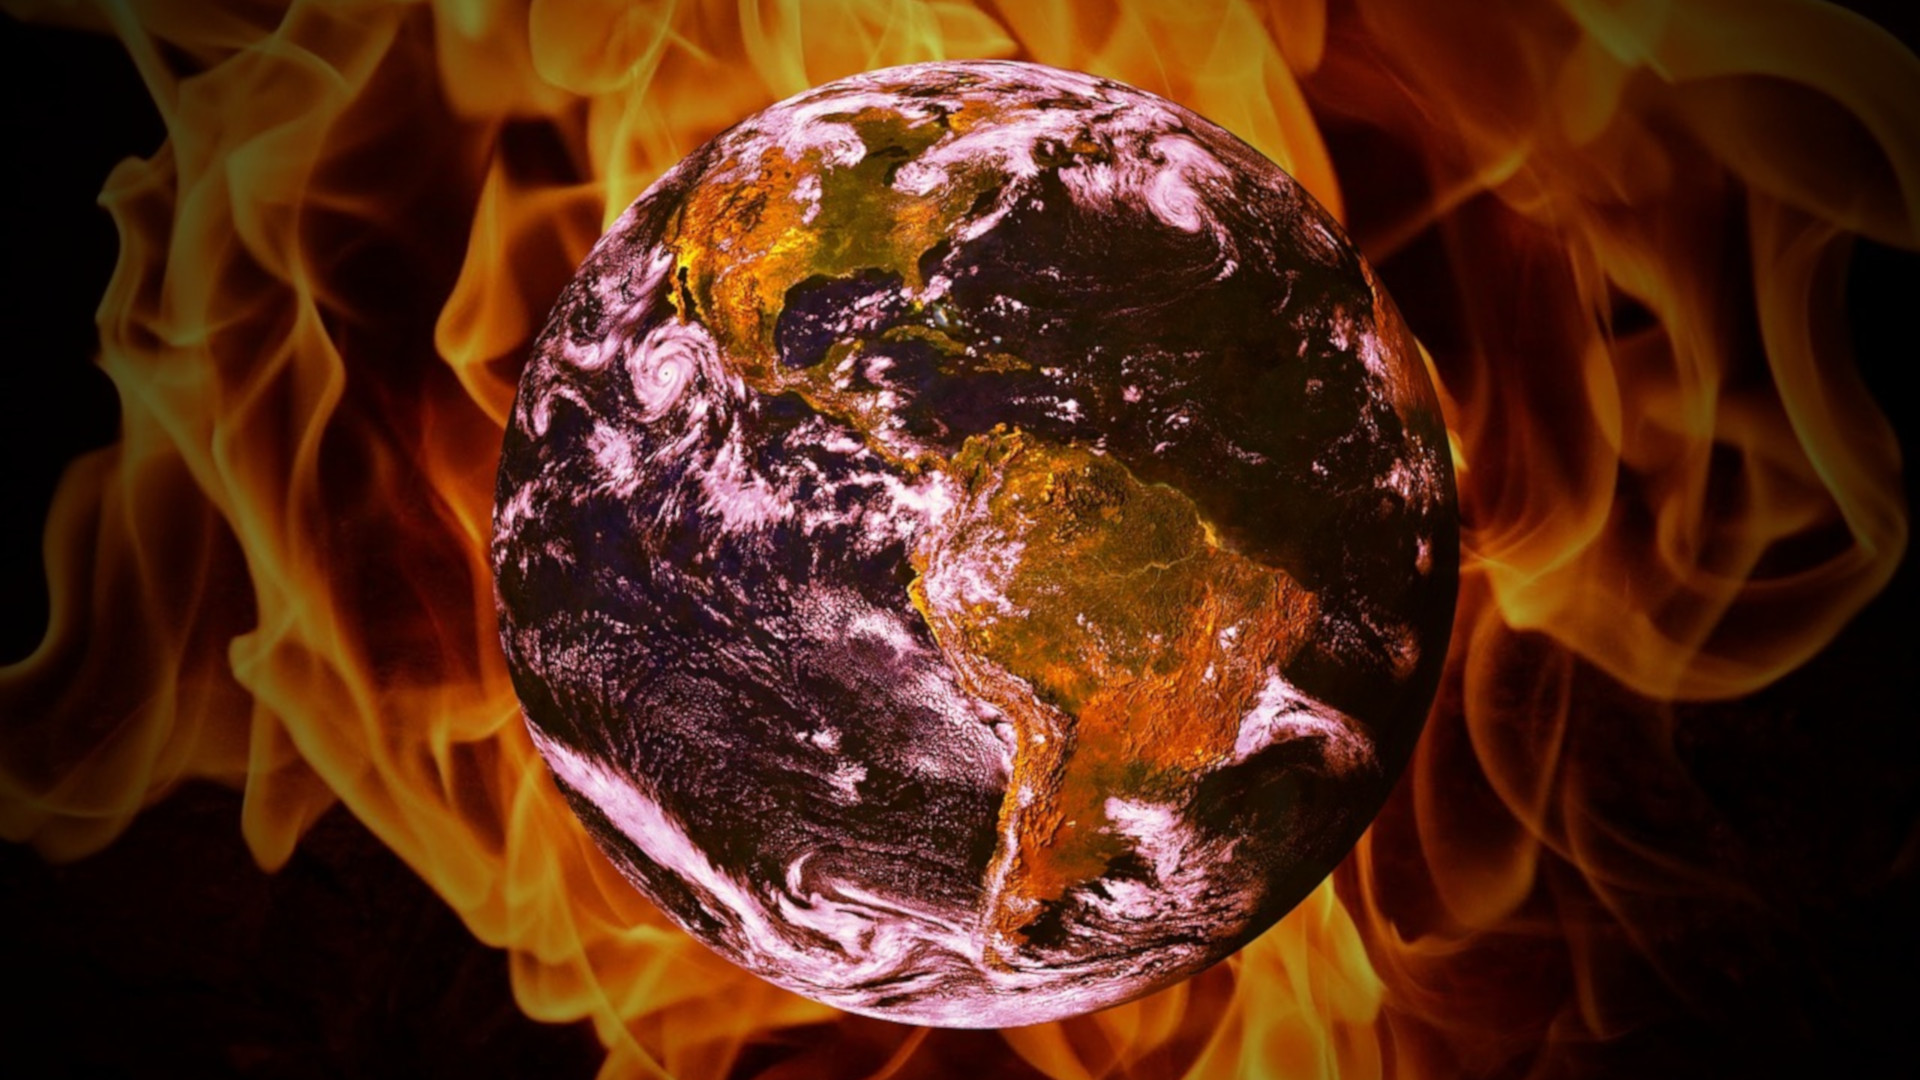 Earth burning